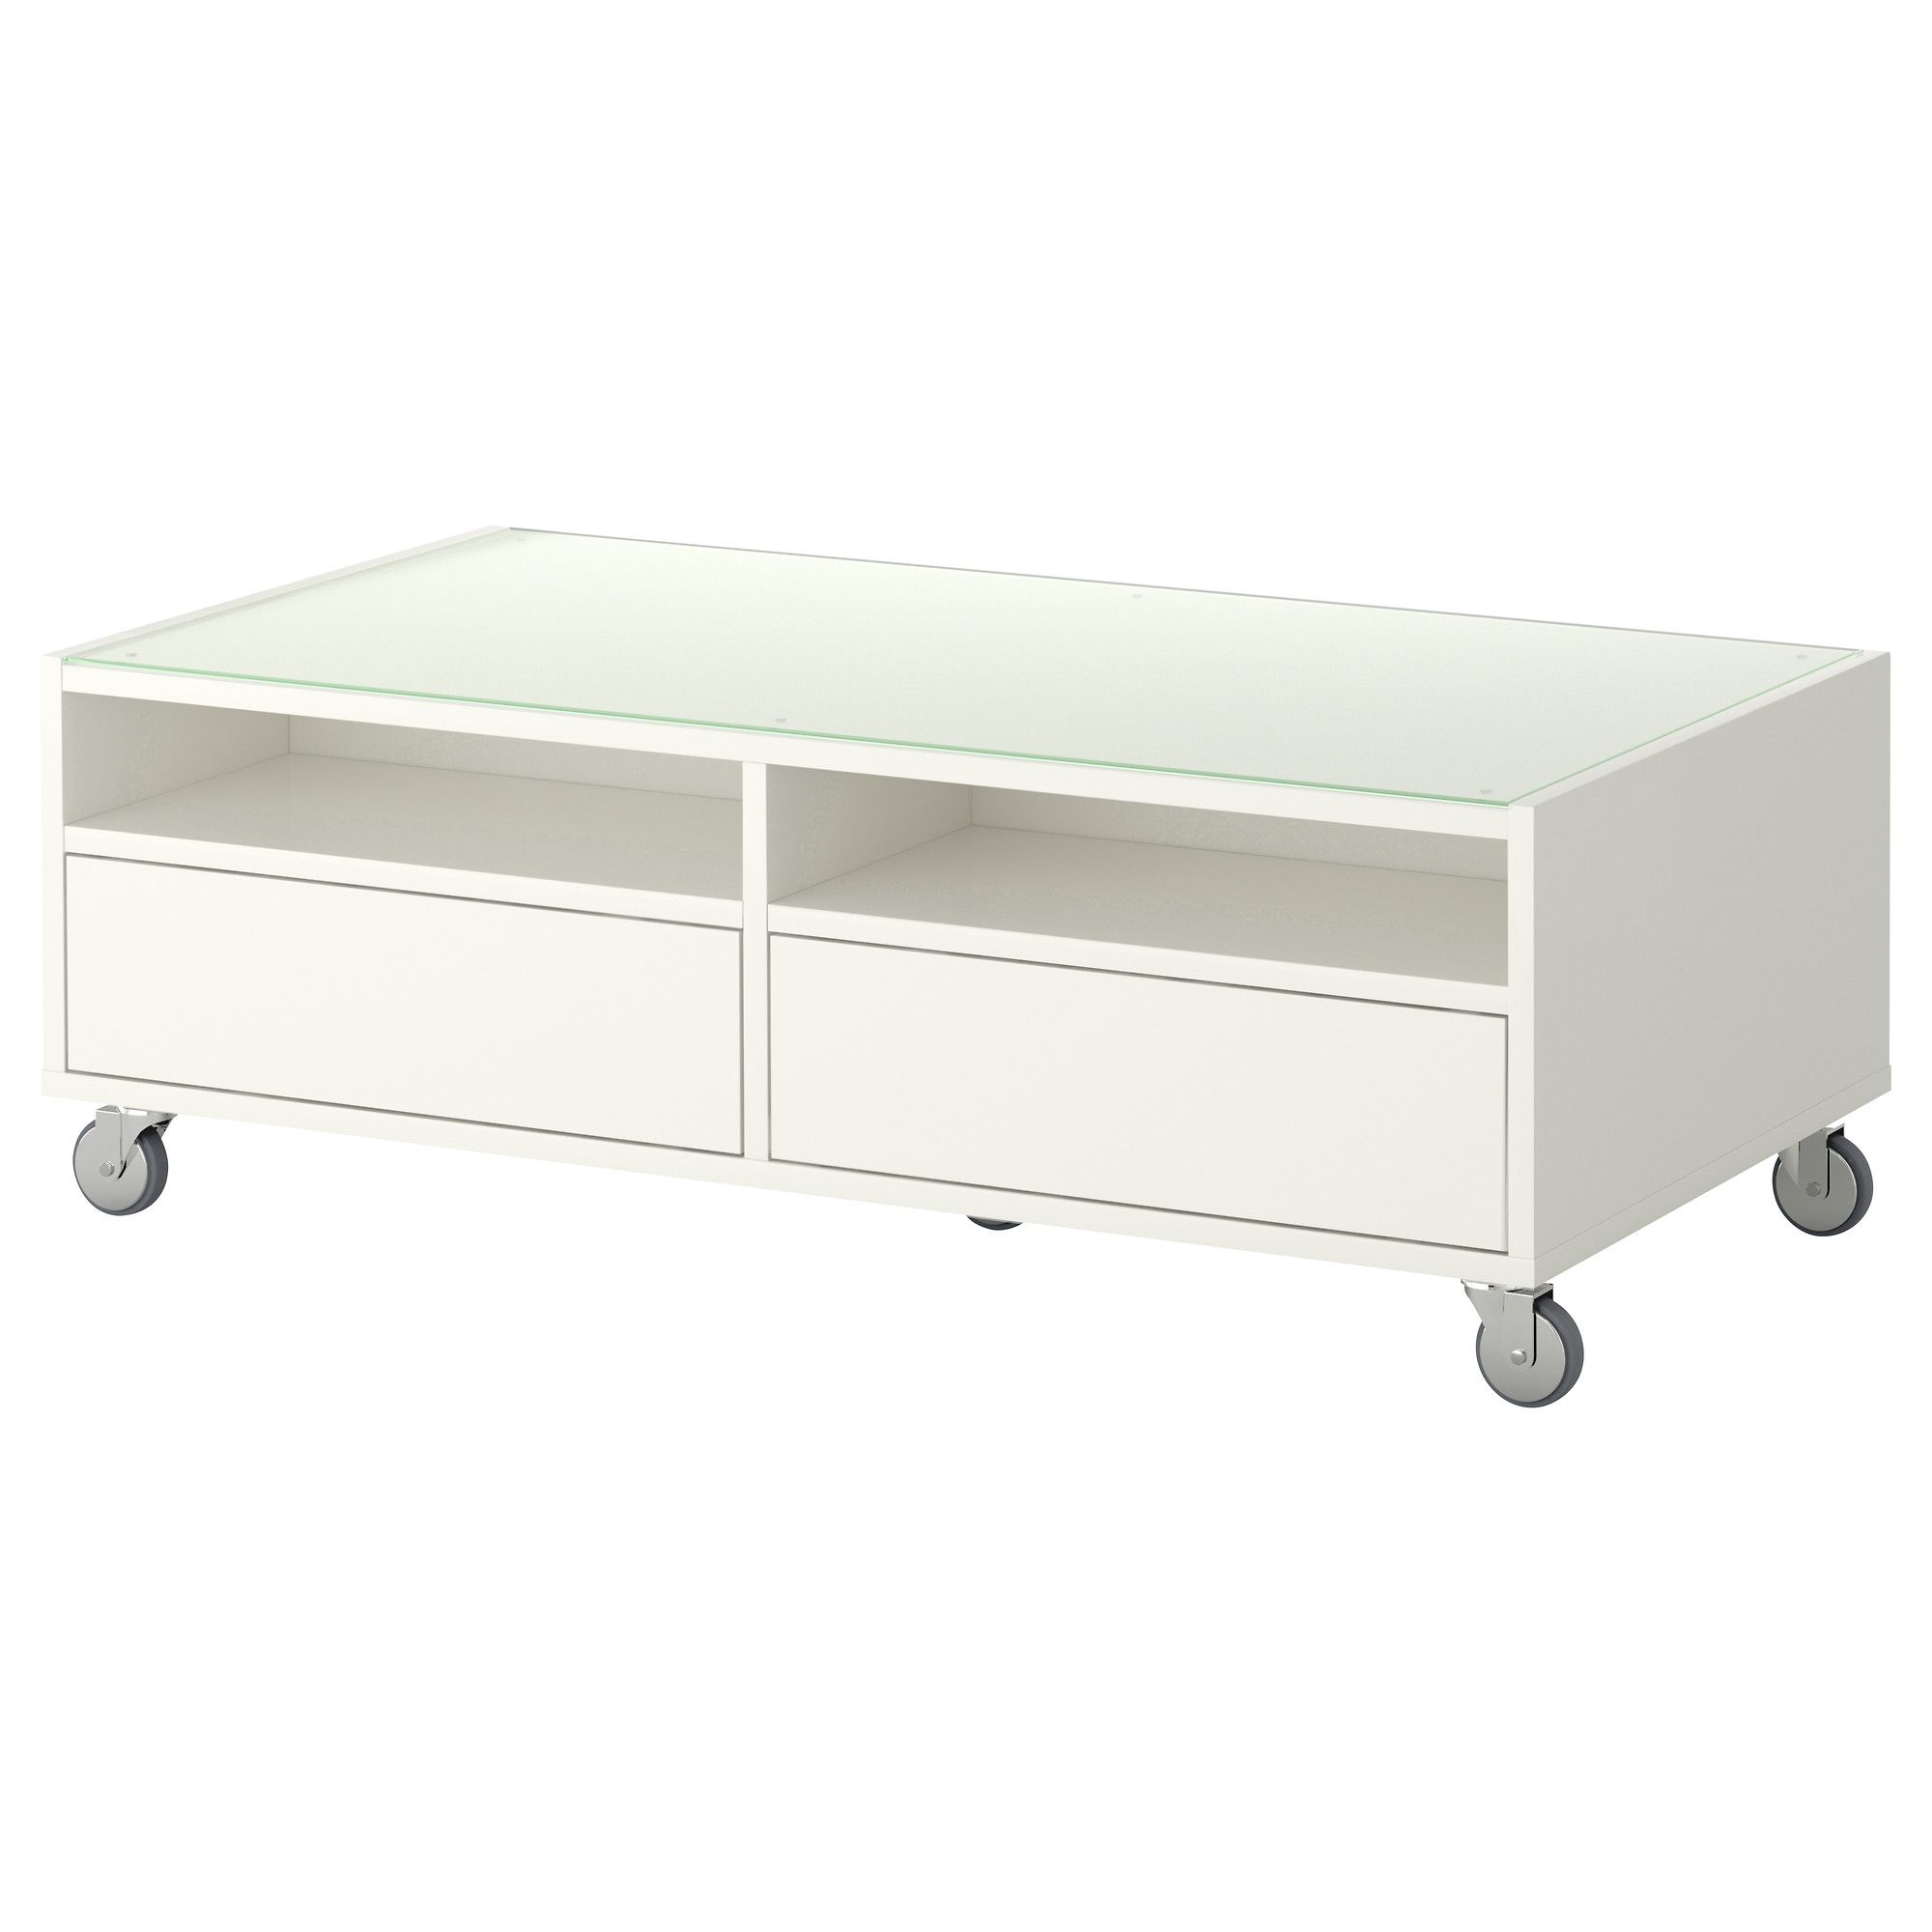 Boksel coffee table white ikea 100 home pinterest living room boksel coffee table ikea top in tempered glass protects surface from stains includes casters making it easy to move geotapseo Gallery